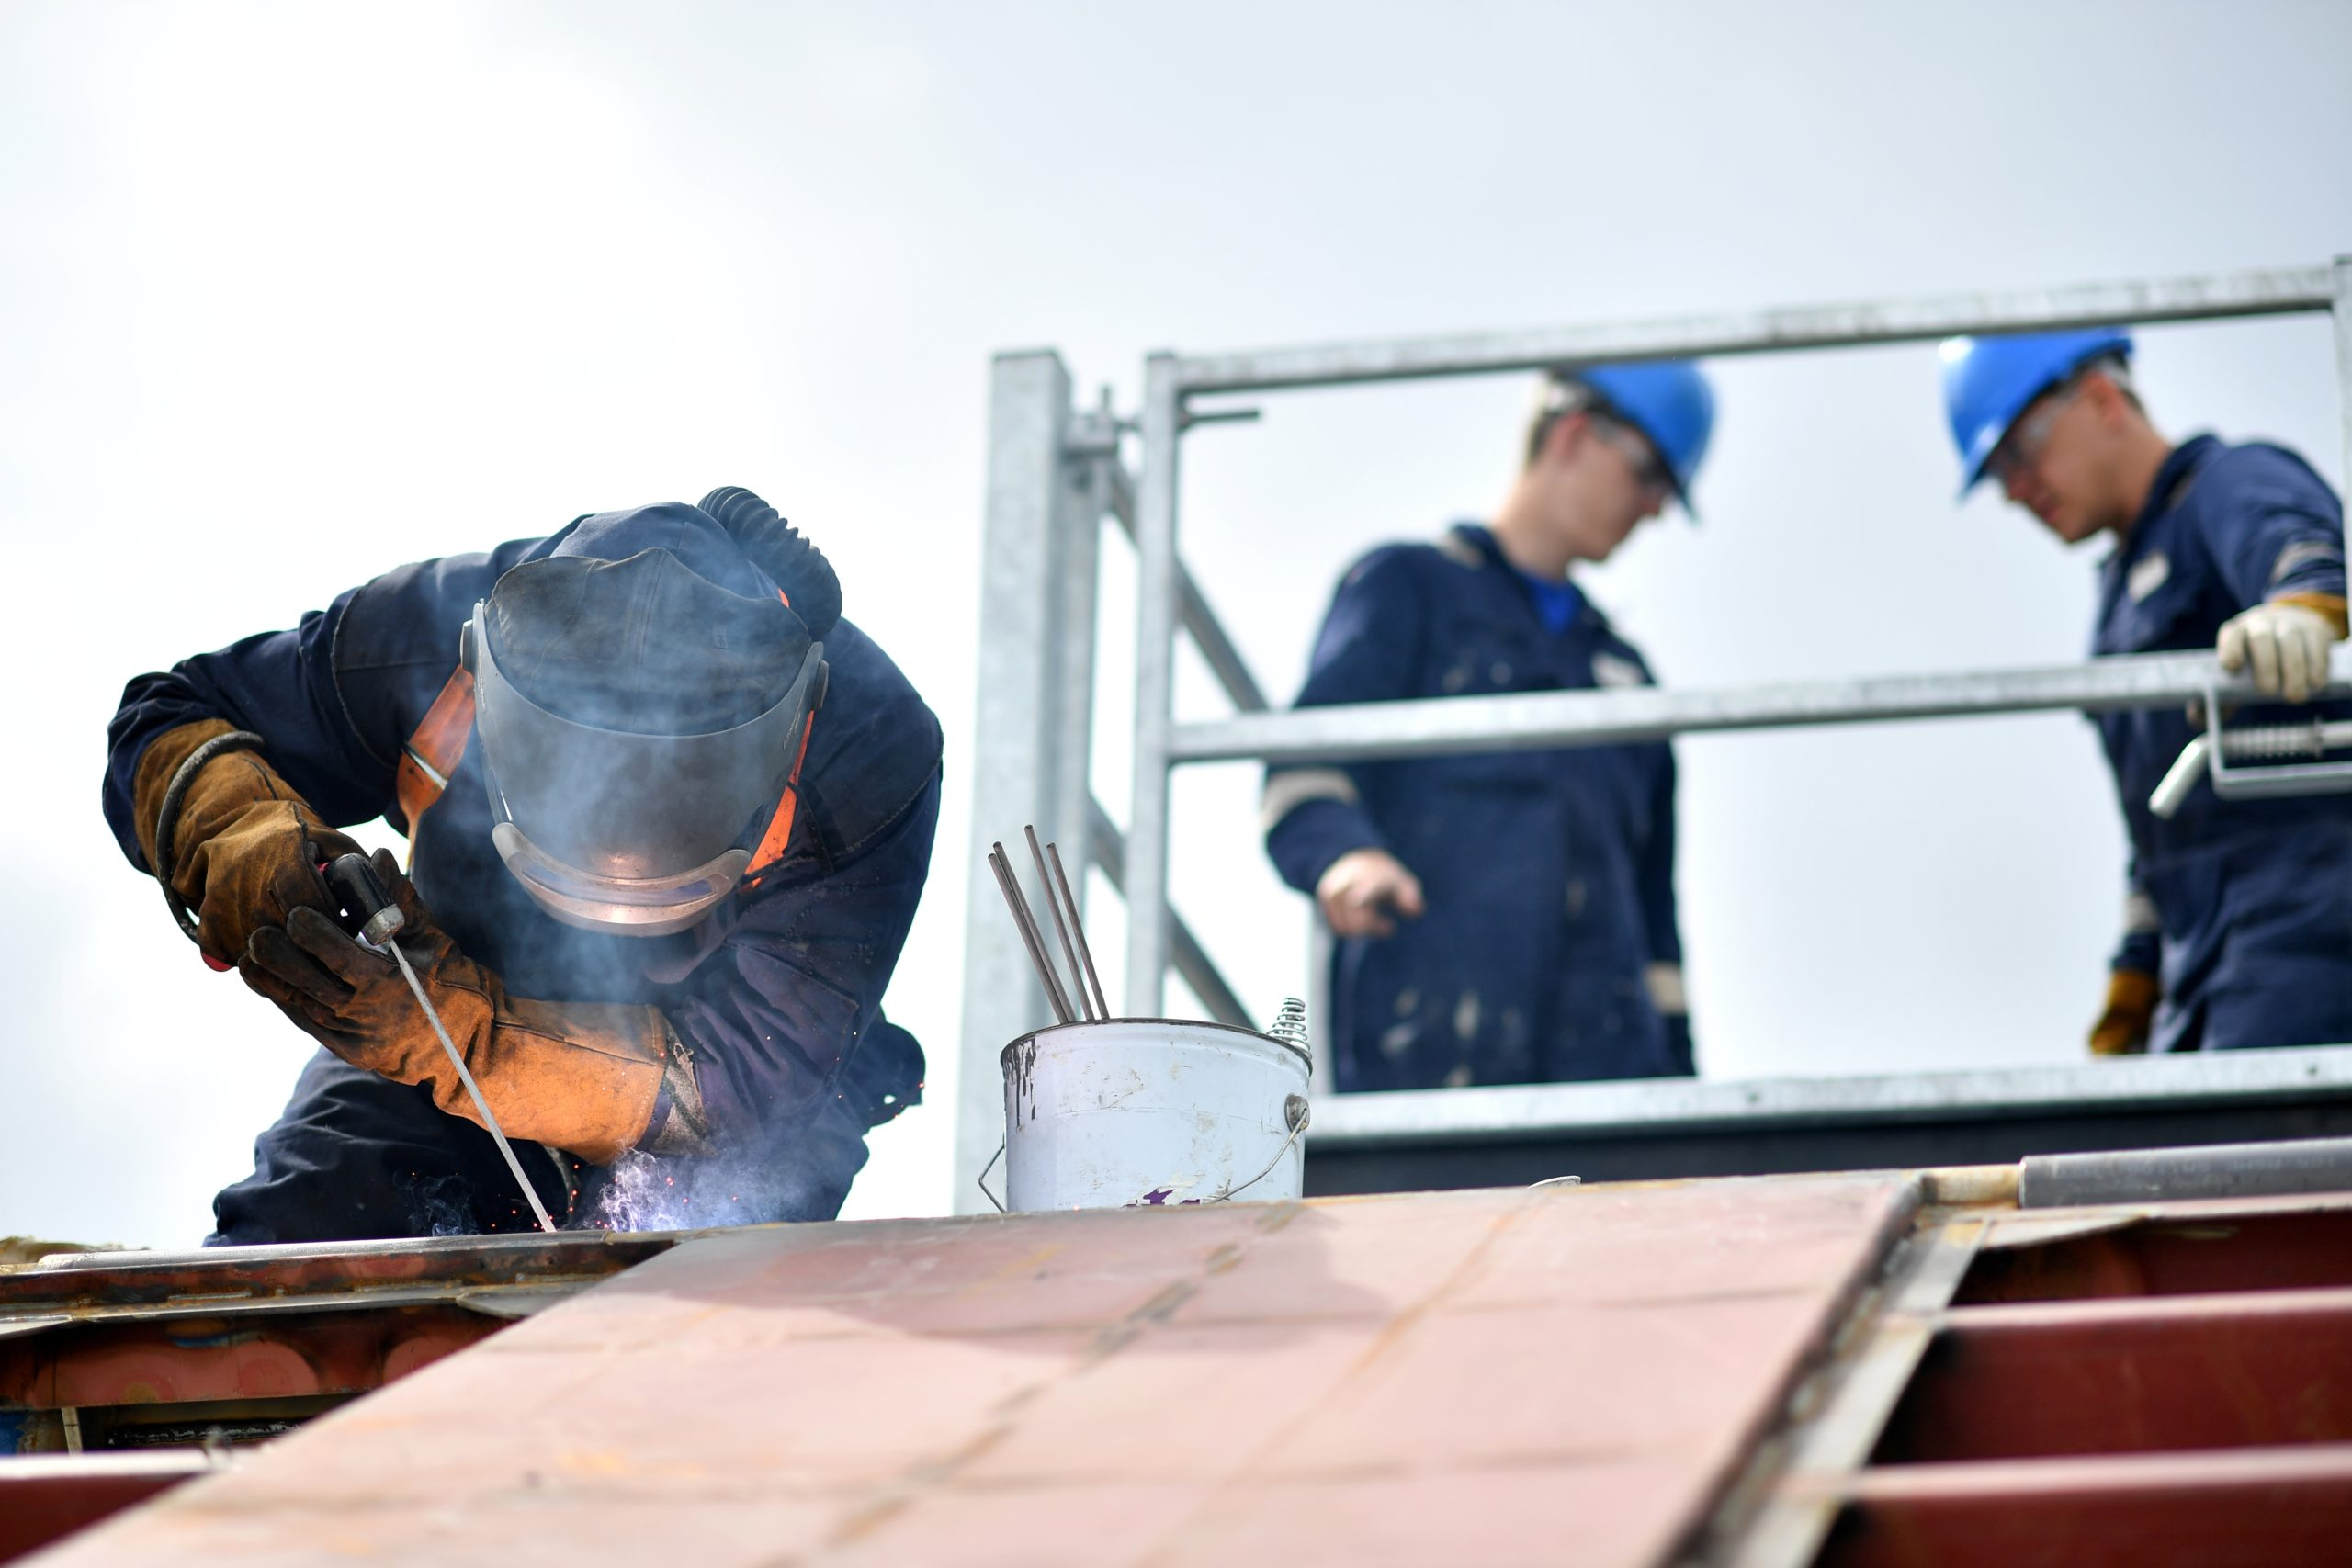 A welder works on a boat at Mainstay Marine Solutions' shipyard in Milford Haven in Wales on August 21, 2019. - Welsh businessman Stewart Graves is certain that a no-deal Brexit will shut down his marine renewable energy plant currently testing its prototypes in the Irish Sea.